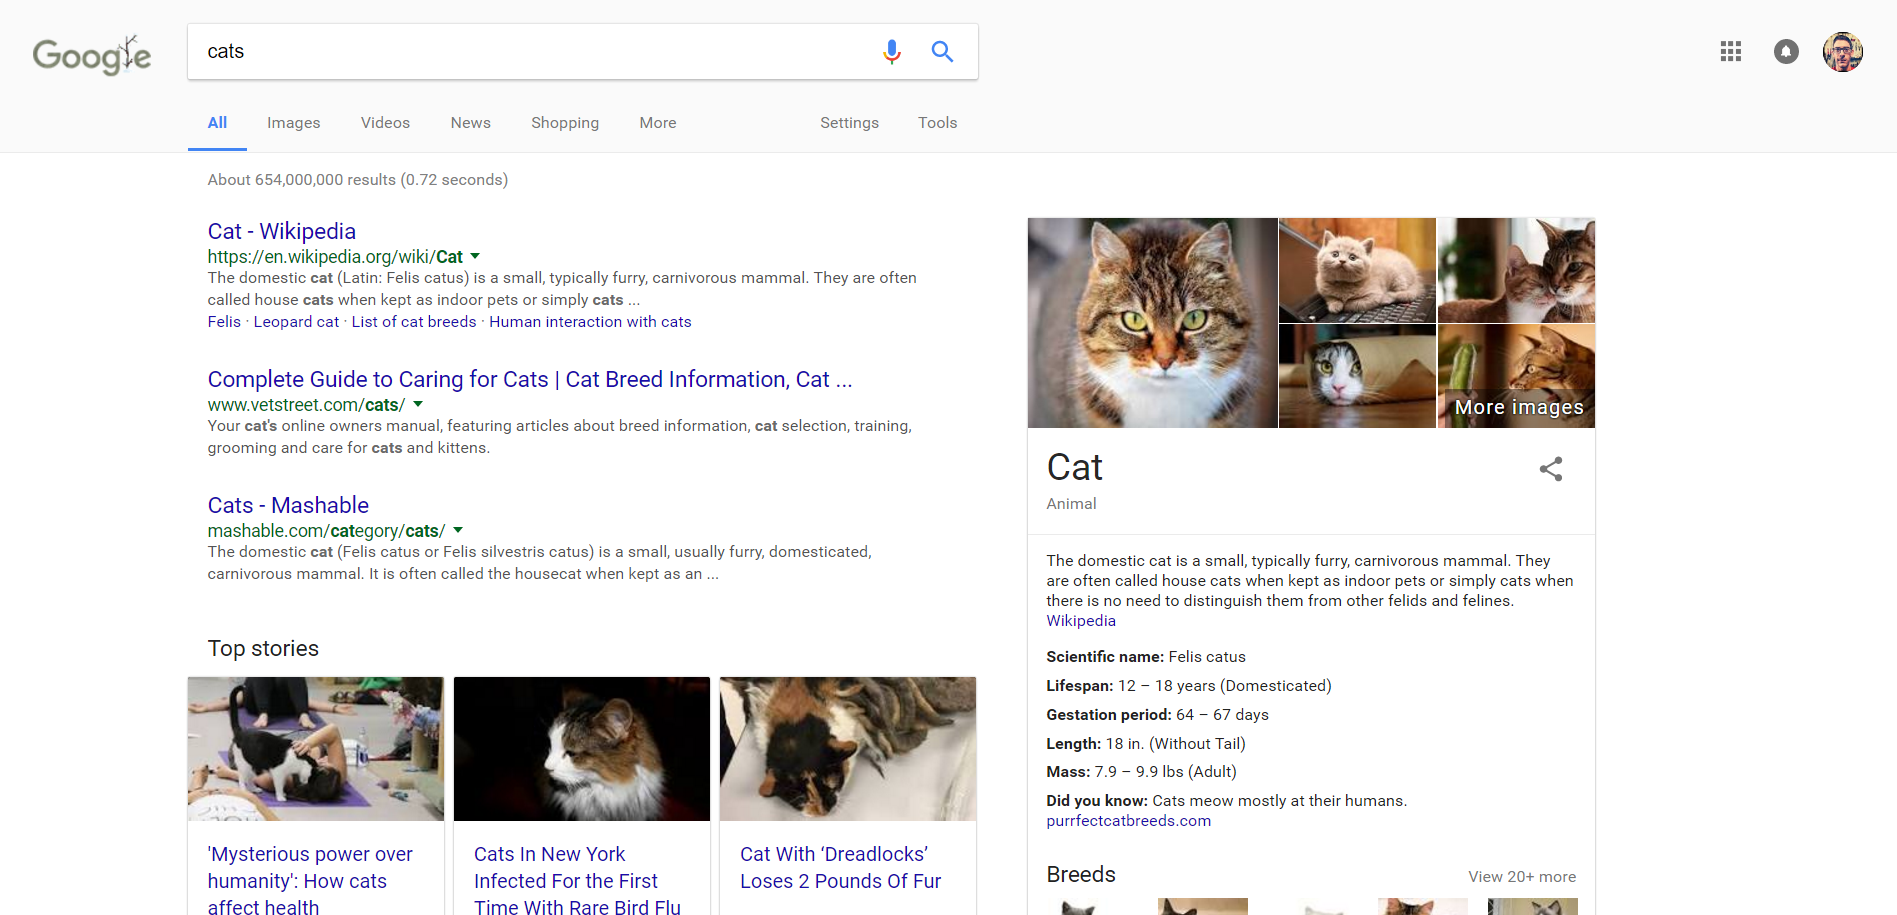 Google Will use Knowledge Graph to Display Quick Descriptions of Sites in Searches